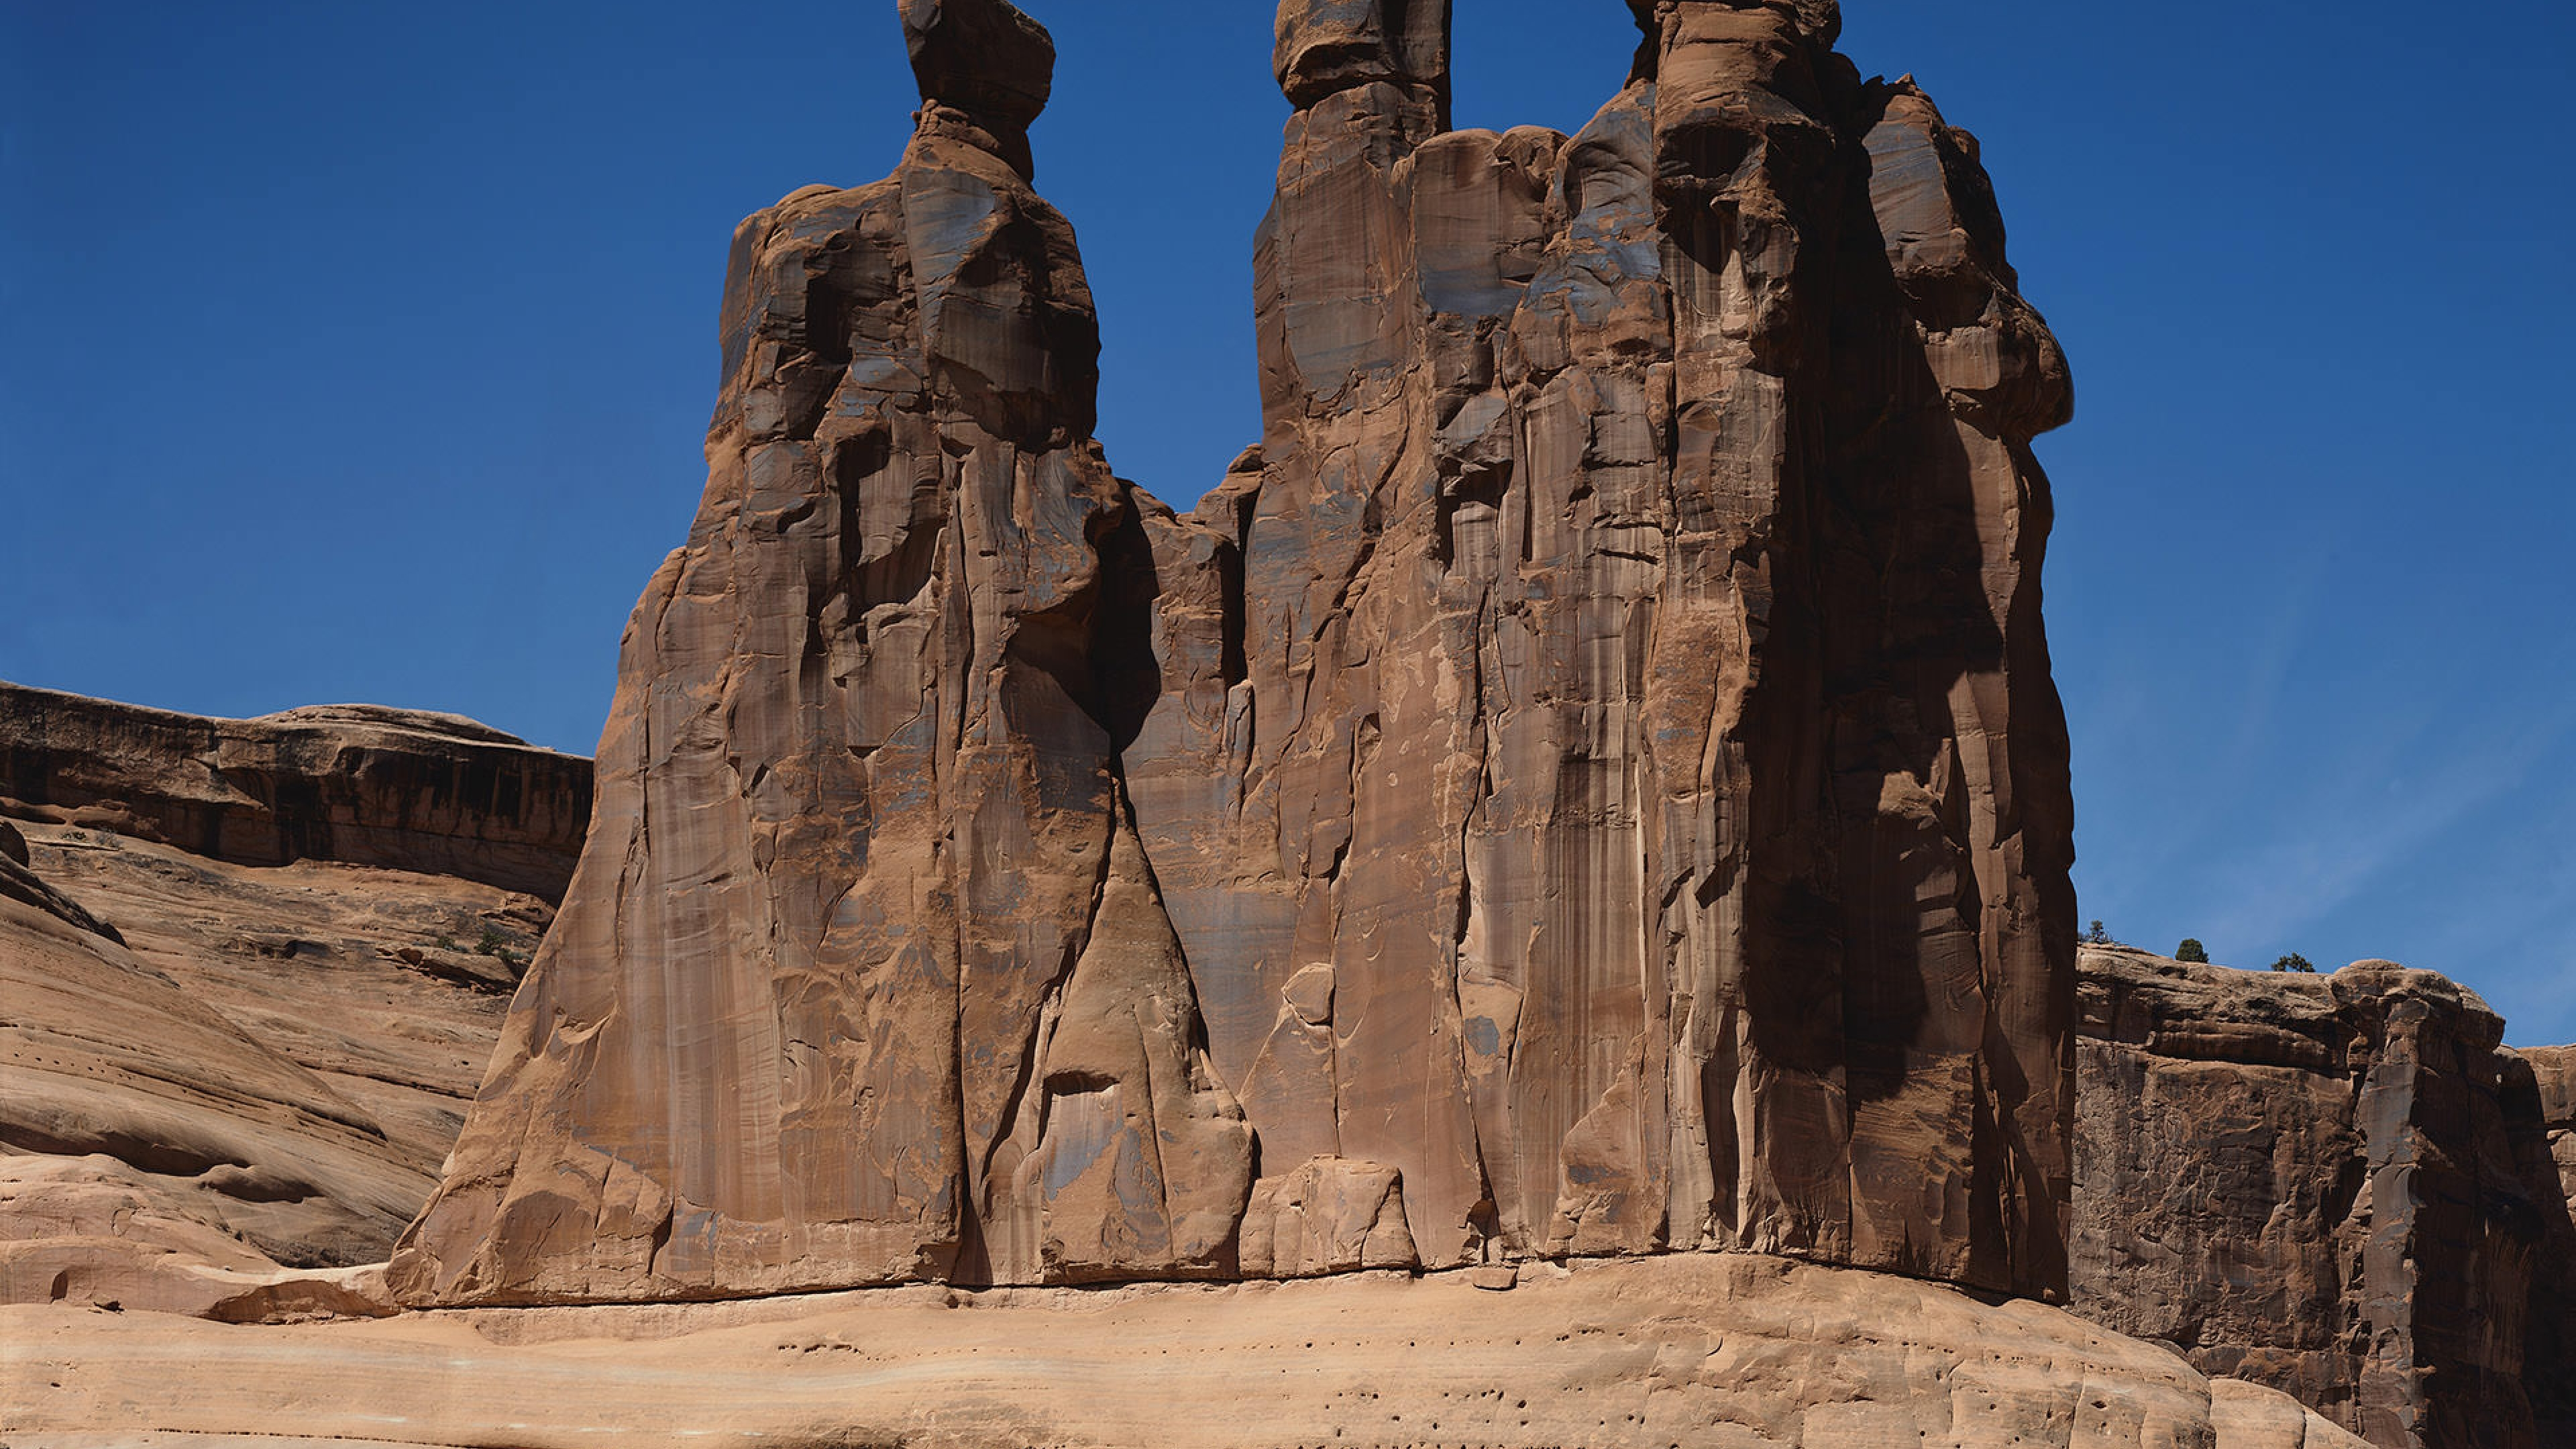 Rock formations at Arches National Park